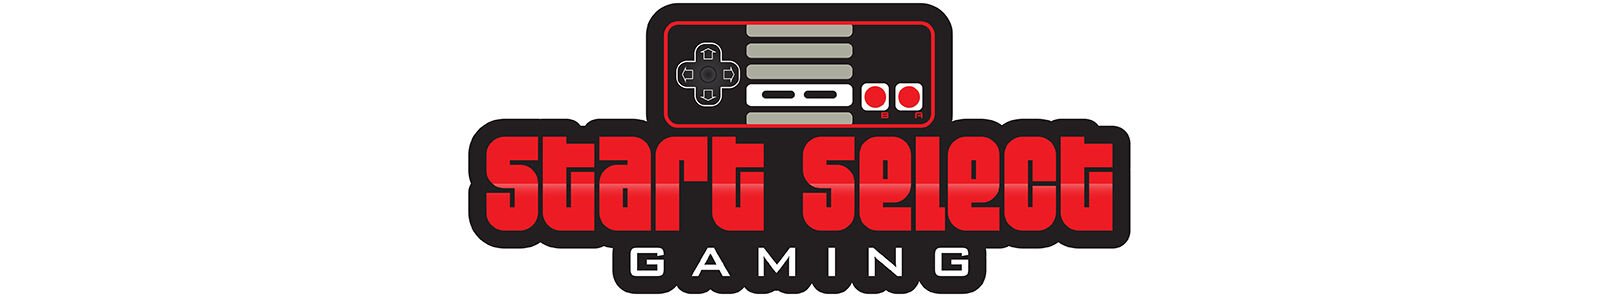 Start Select Gaming